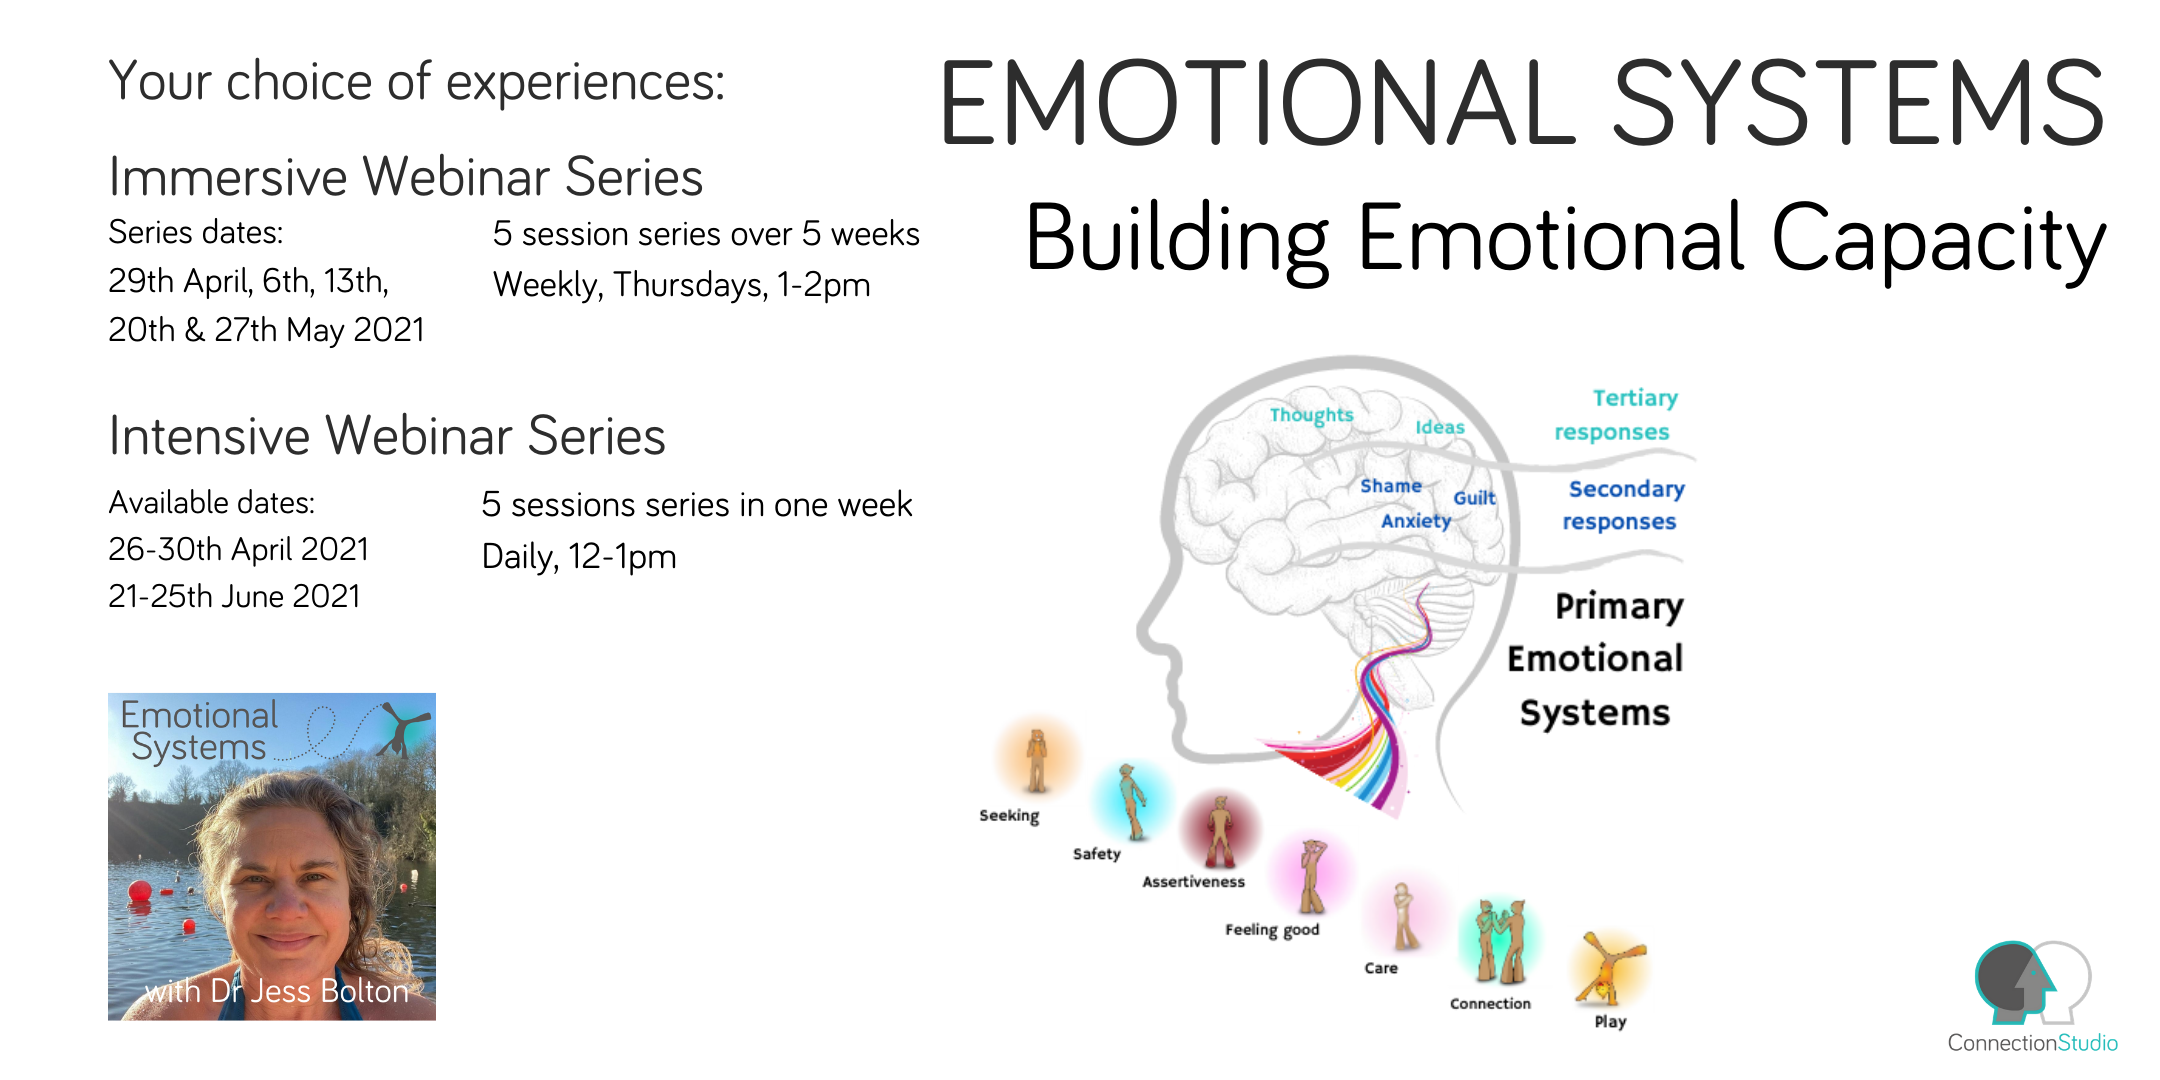 Dates and times of Emotional Systems 5 part webinars